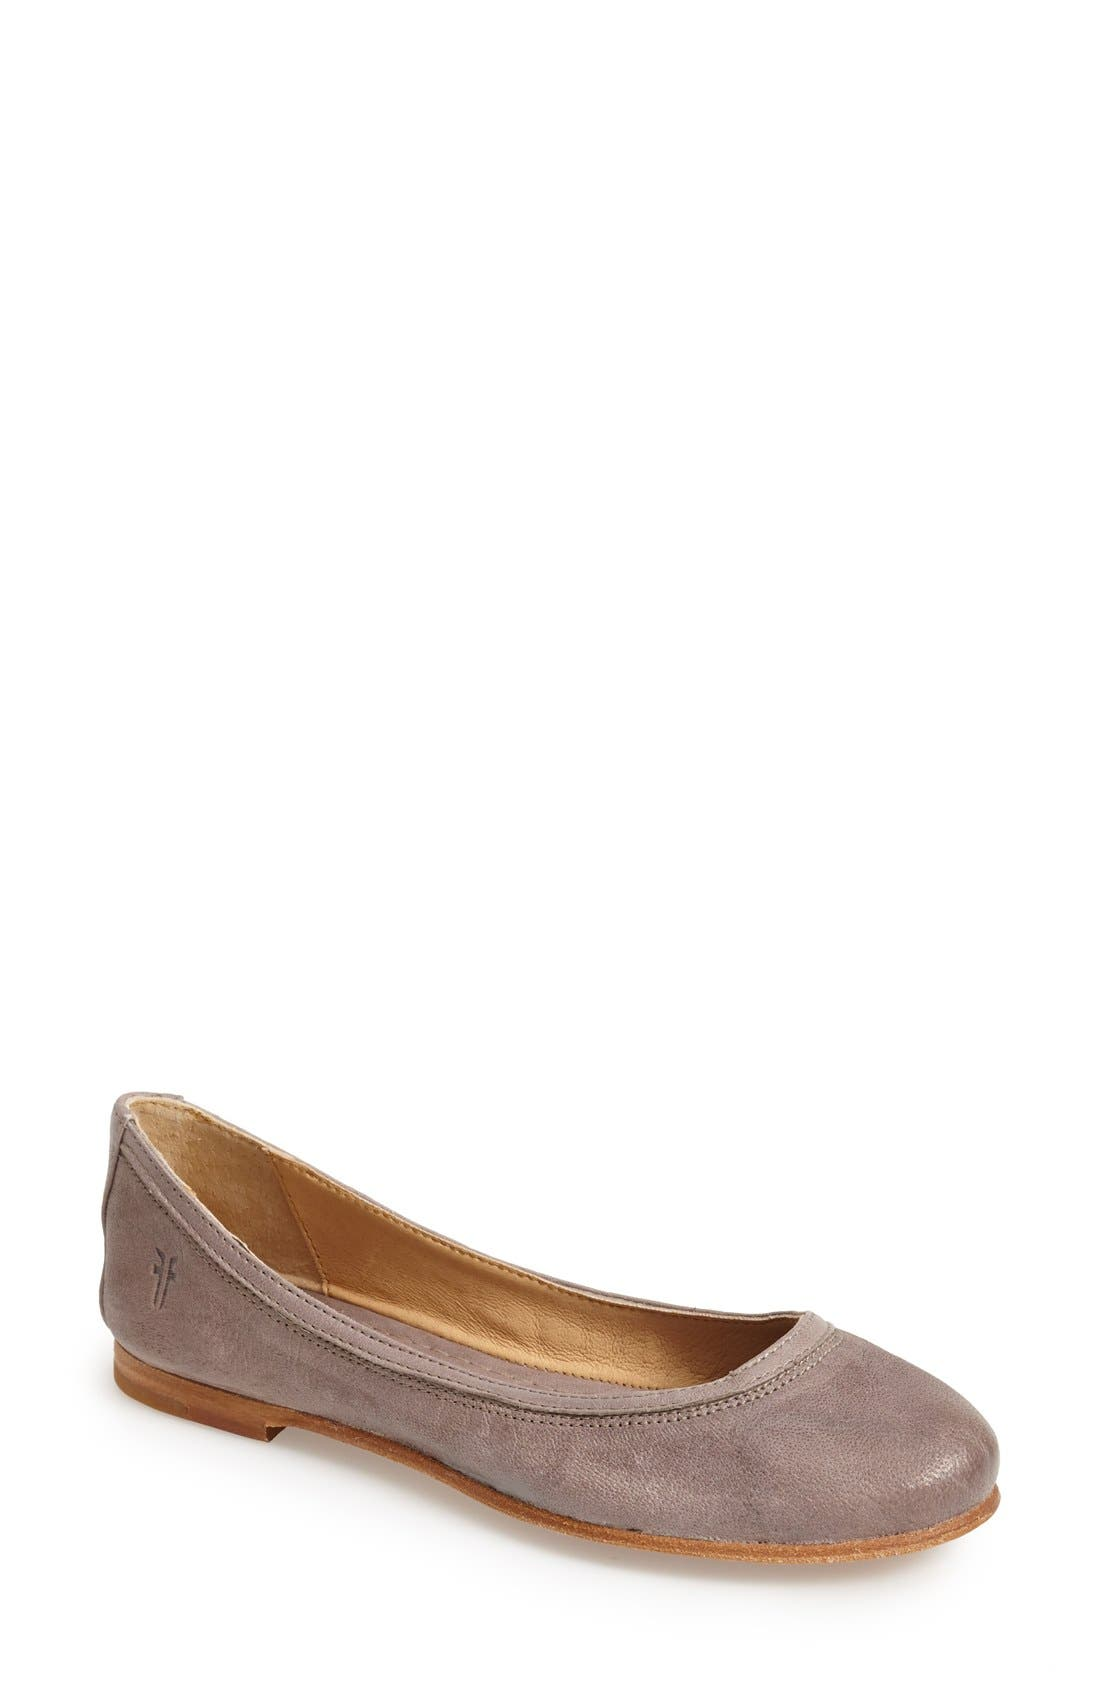 Carson Leather Ballet Flats in Grey Antique Nubuck